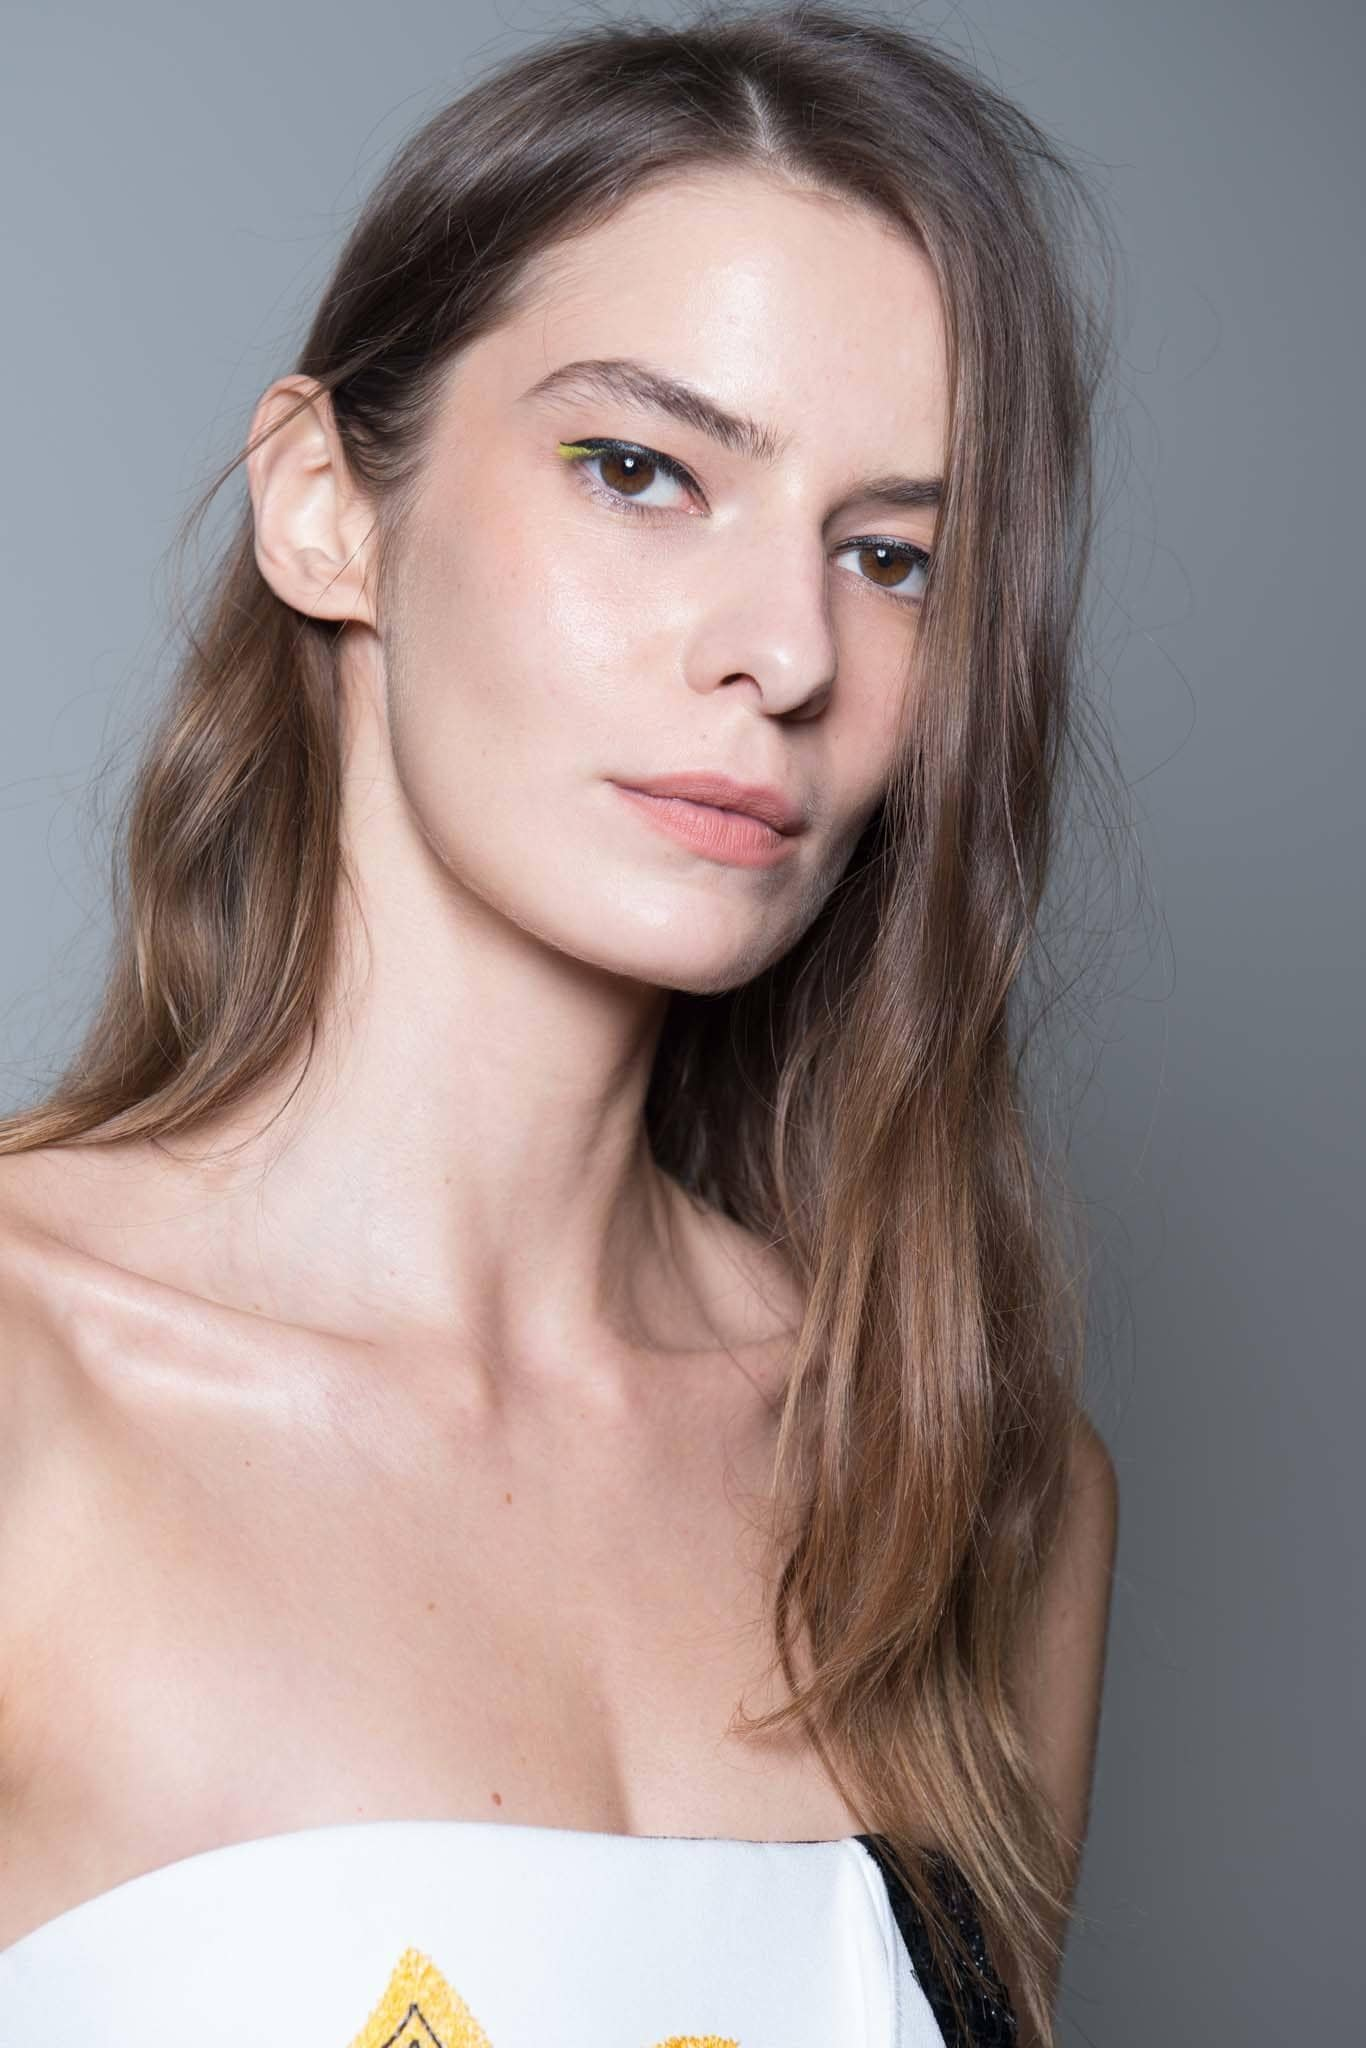 backstage shot of model with straight hair that has a few waves in it, posing